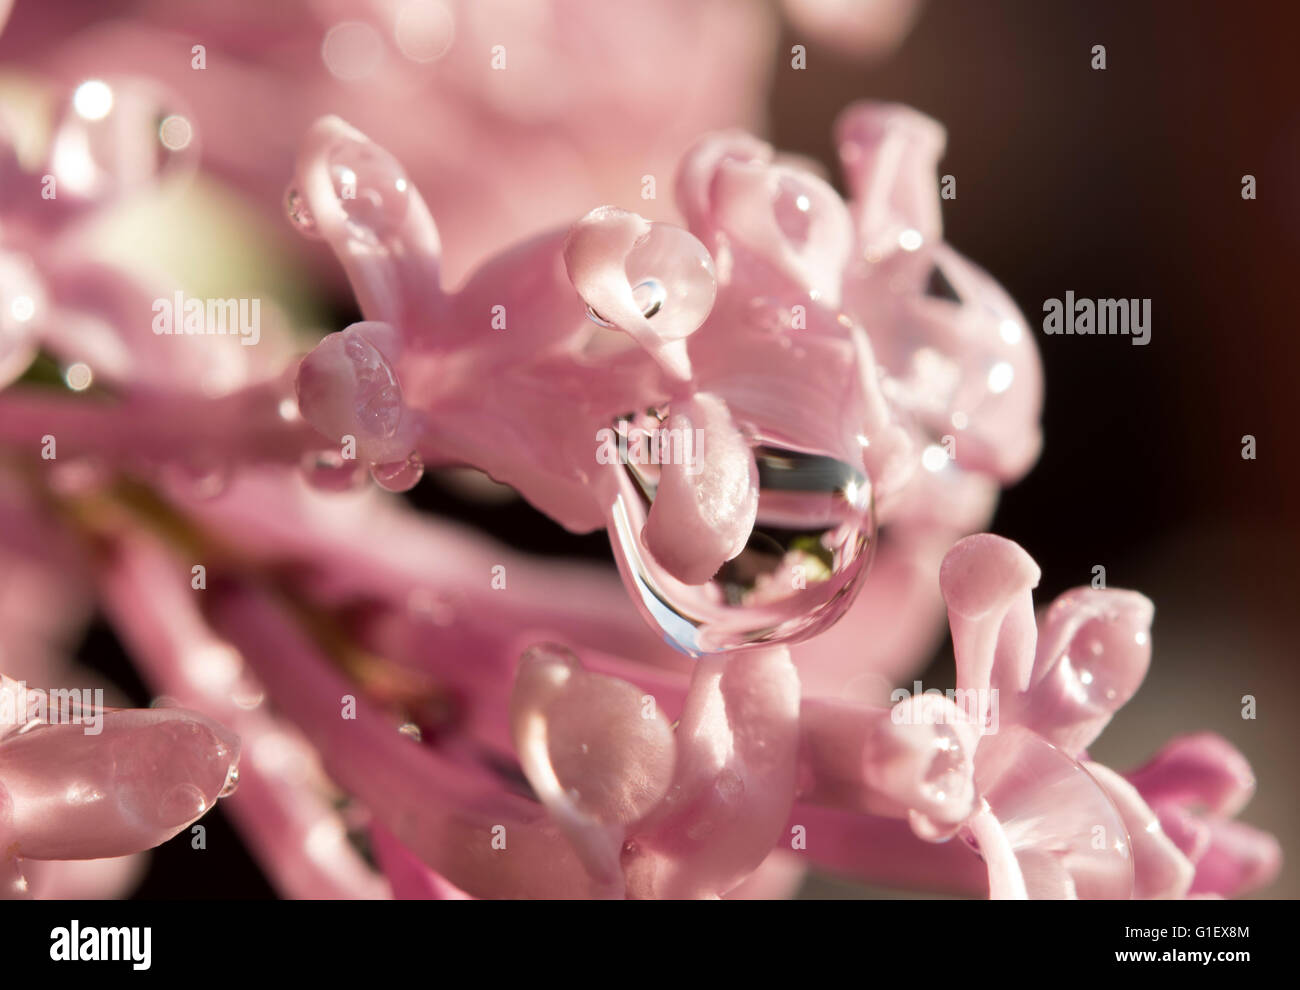 lilac flower close up with water droplets - Stock Image